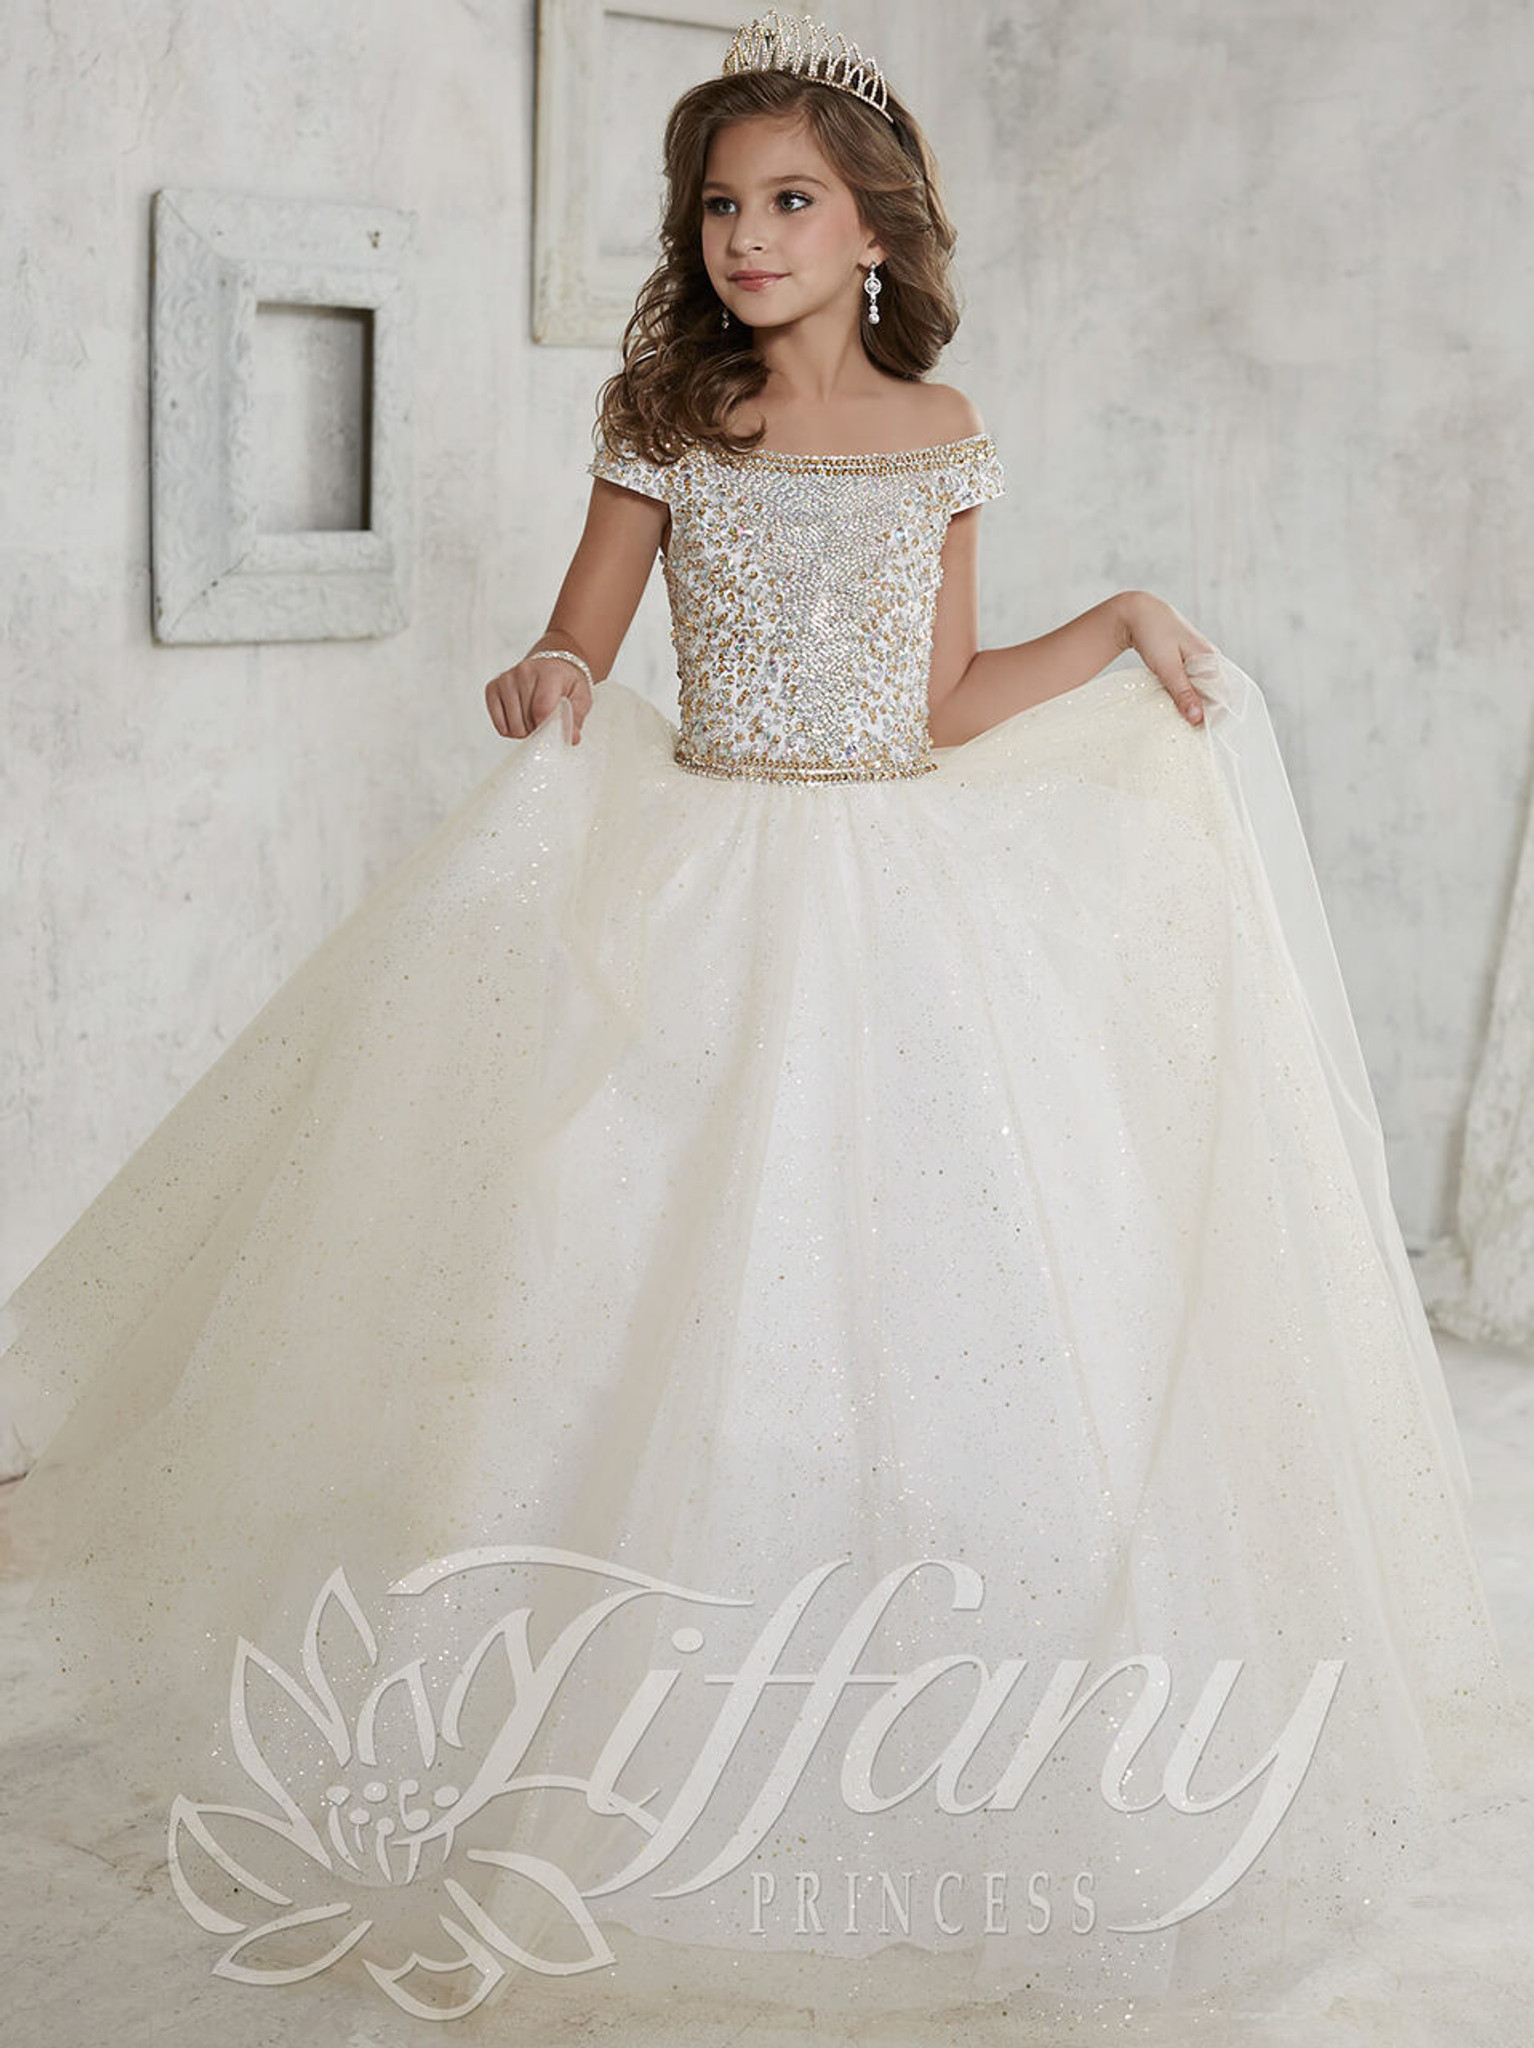 Tulle Pageant Dress by Tiffany Princess 13457